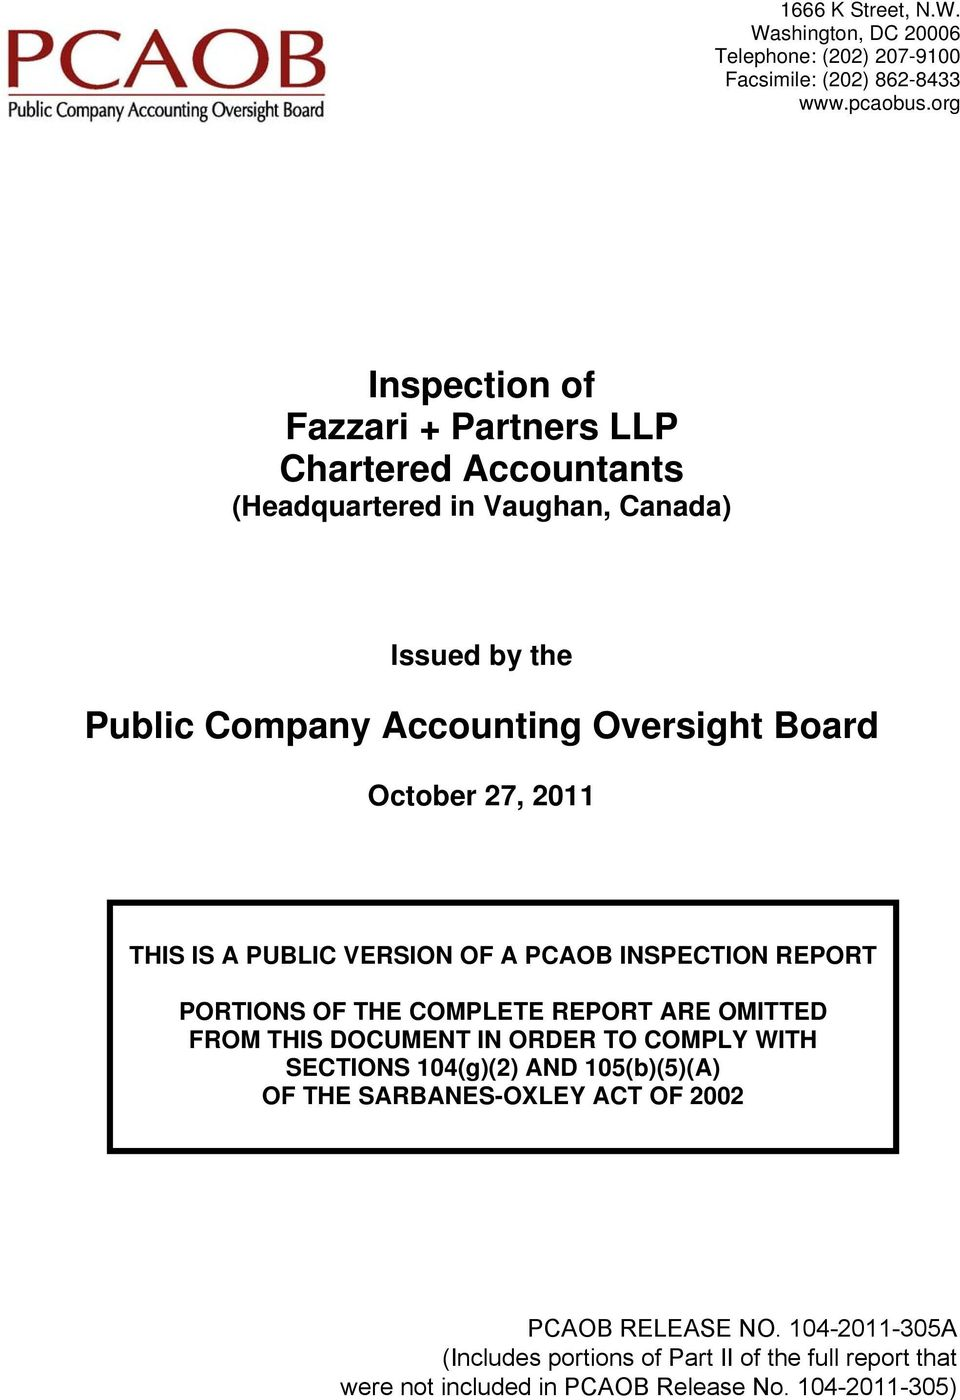 PUBLIC VERSION OF A PCAOB INSPECTION REPORT PORTIONS OF THE COMPLETE REPORT ARE OMITTED FROM THIS DOCUMENT IN ORDER TO COMPLY WITH SECTIONS